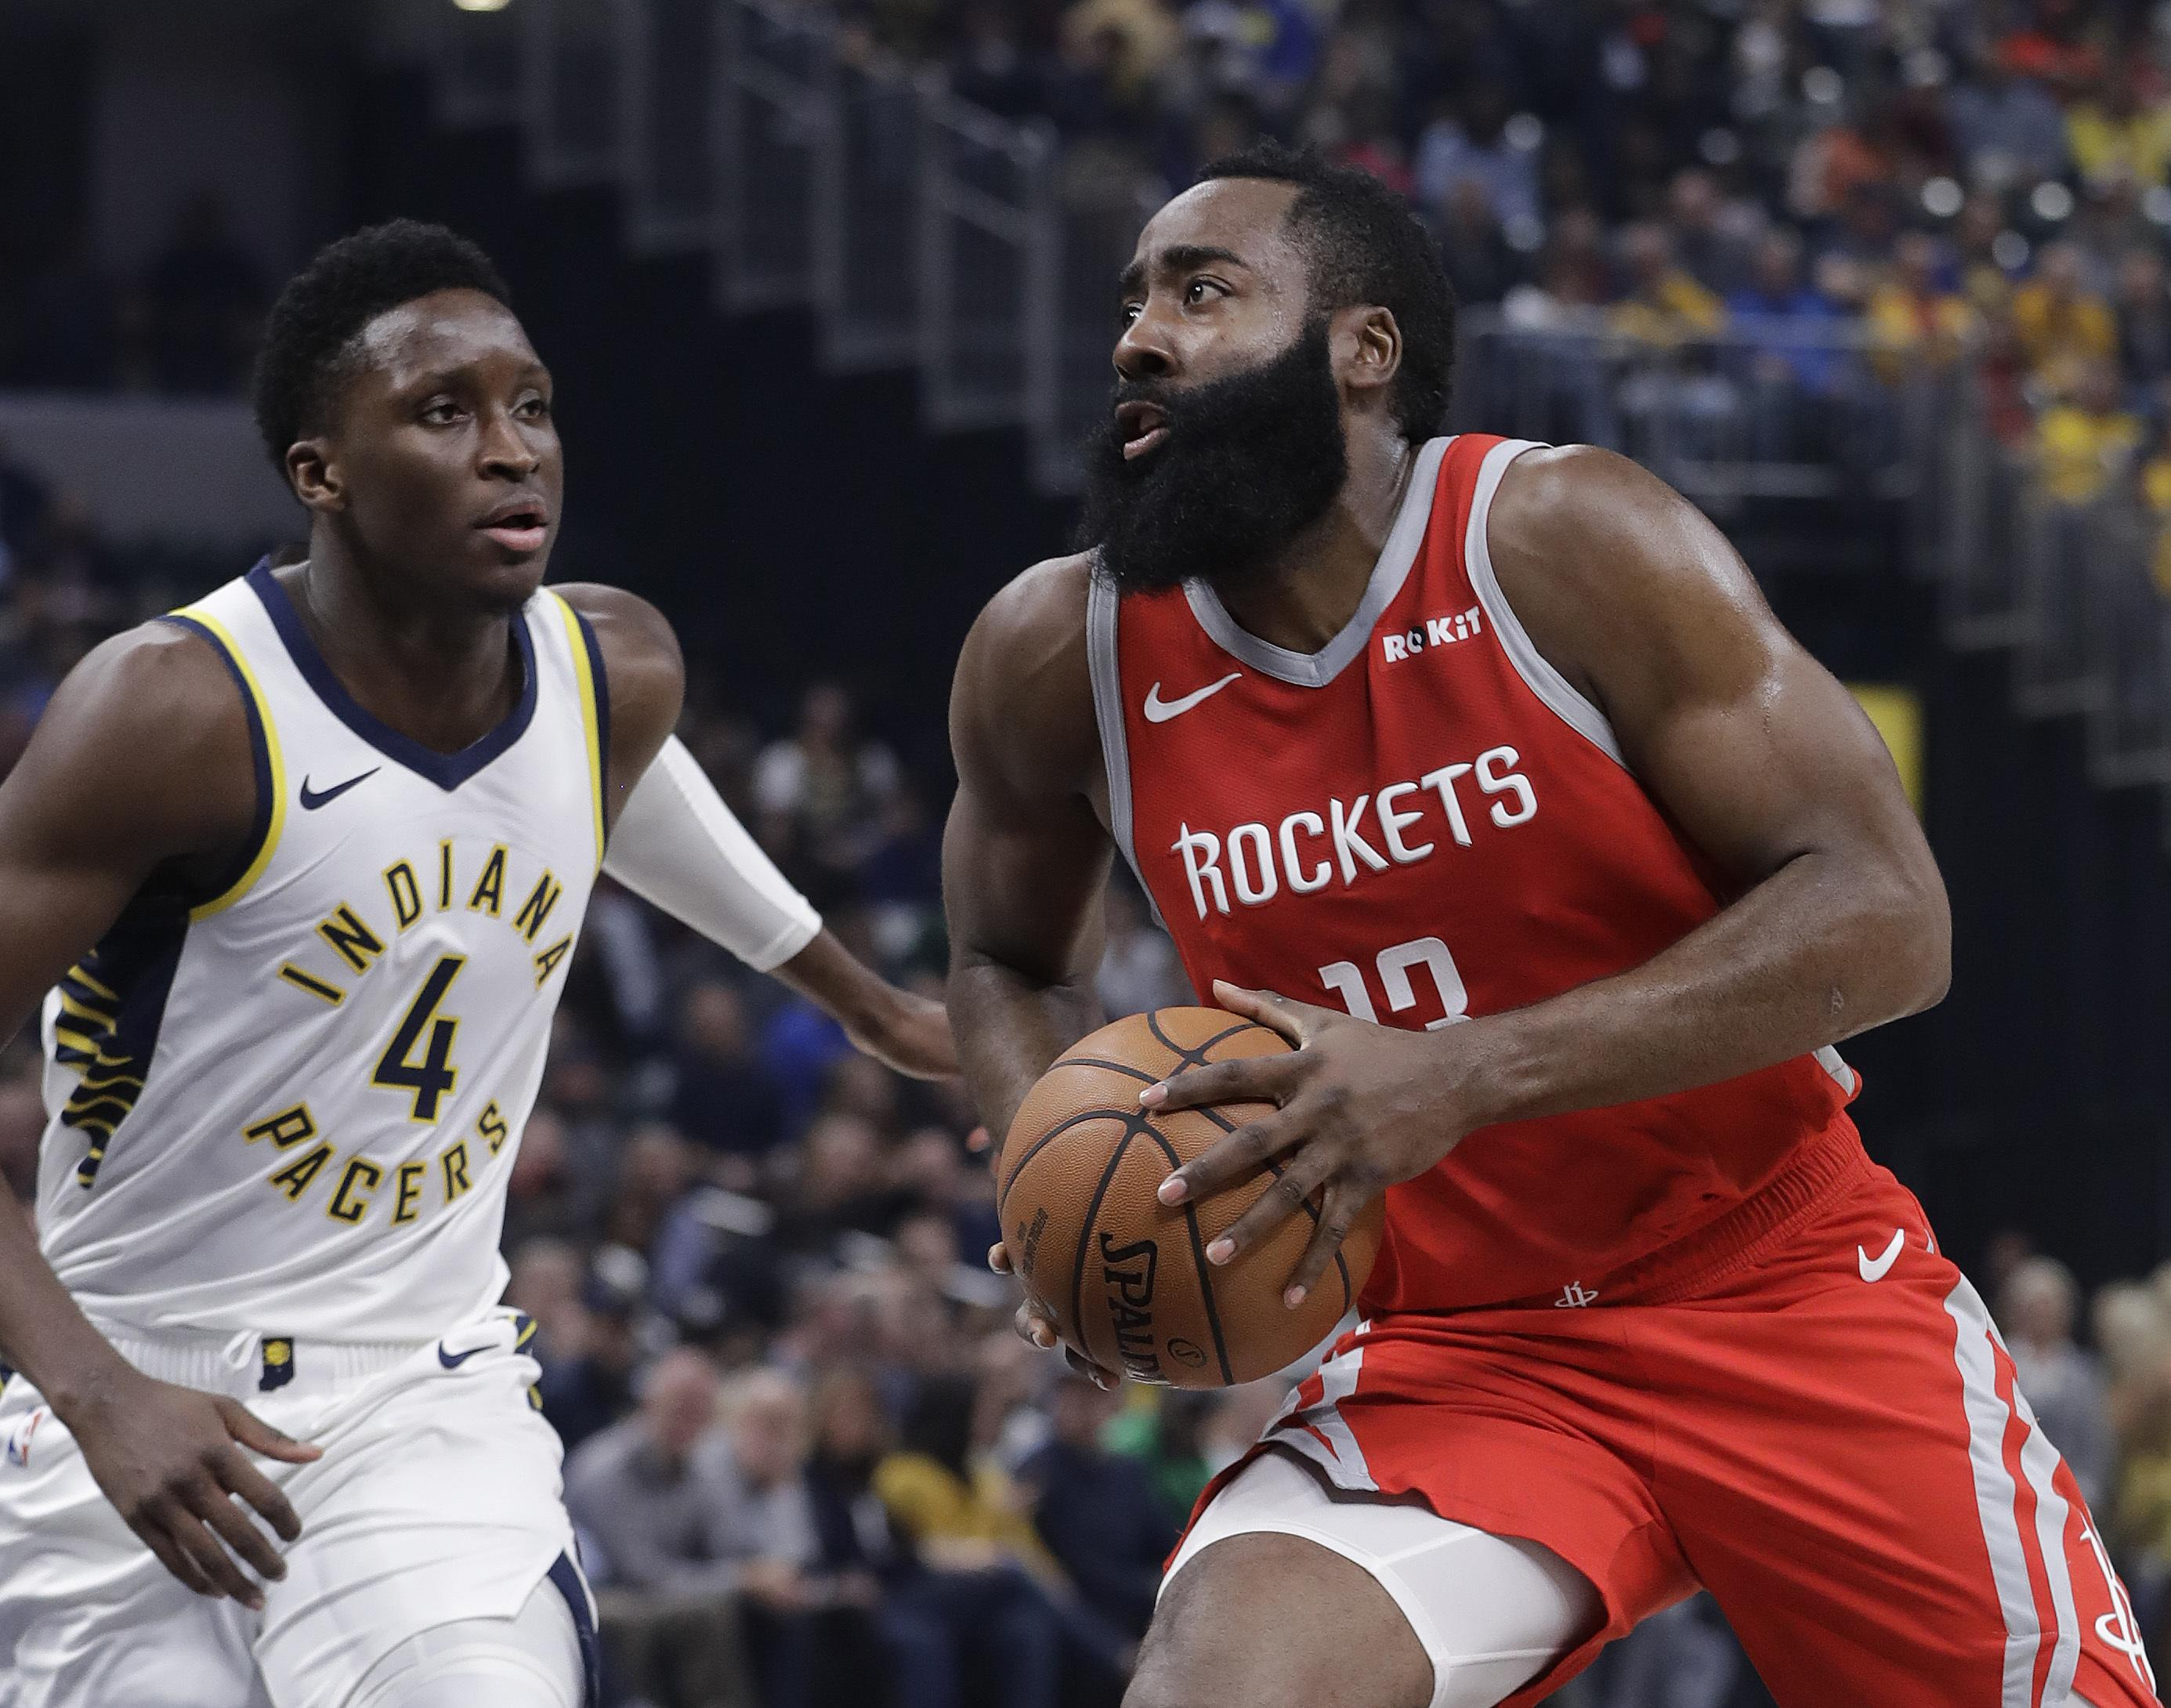 wholesale dealer 88554 17643 Houston s James Harden drives to the basket against Indiana s Victor  Oladipo during first-half action